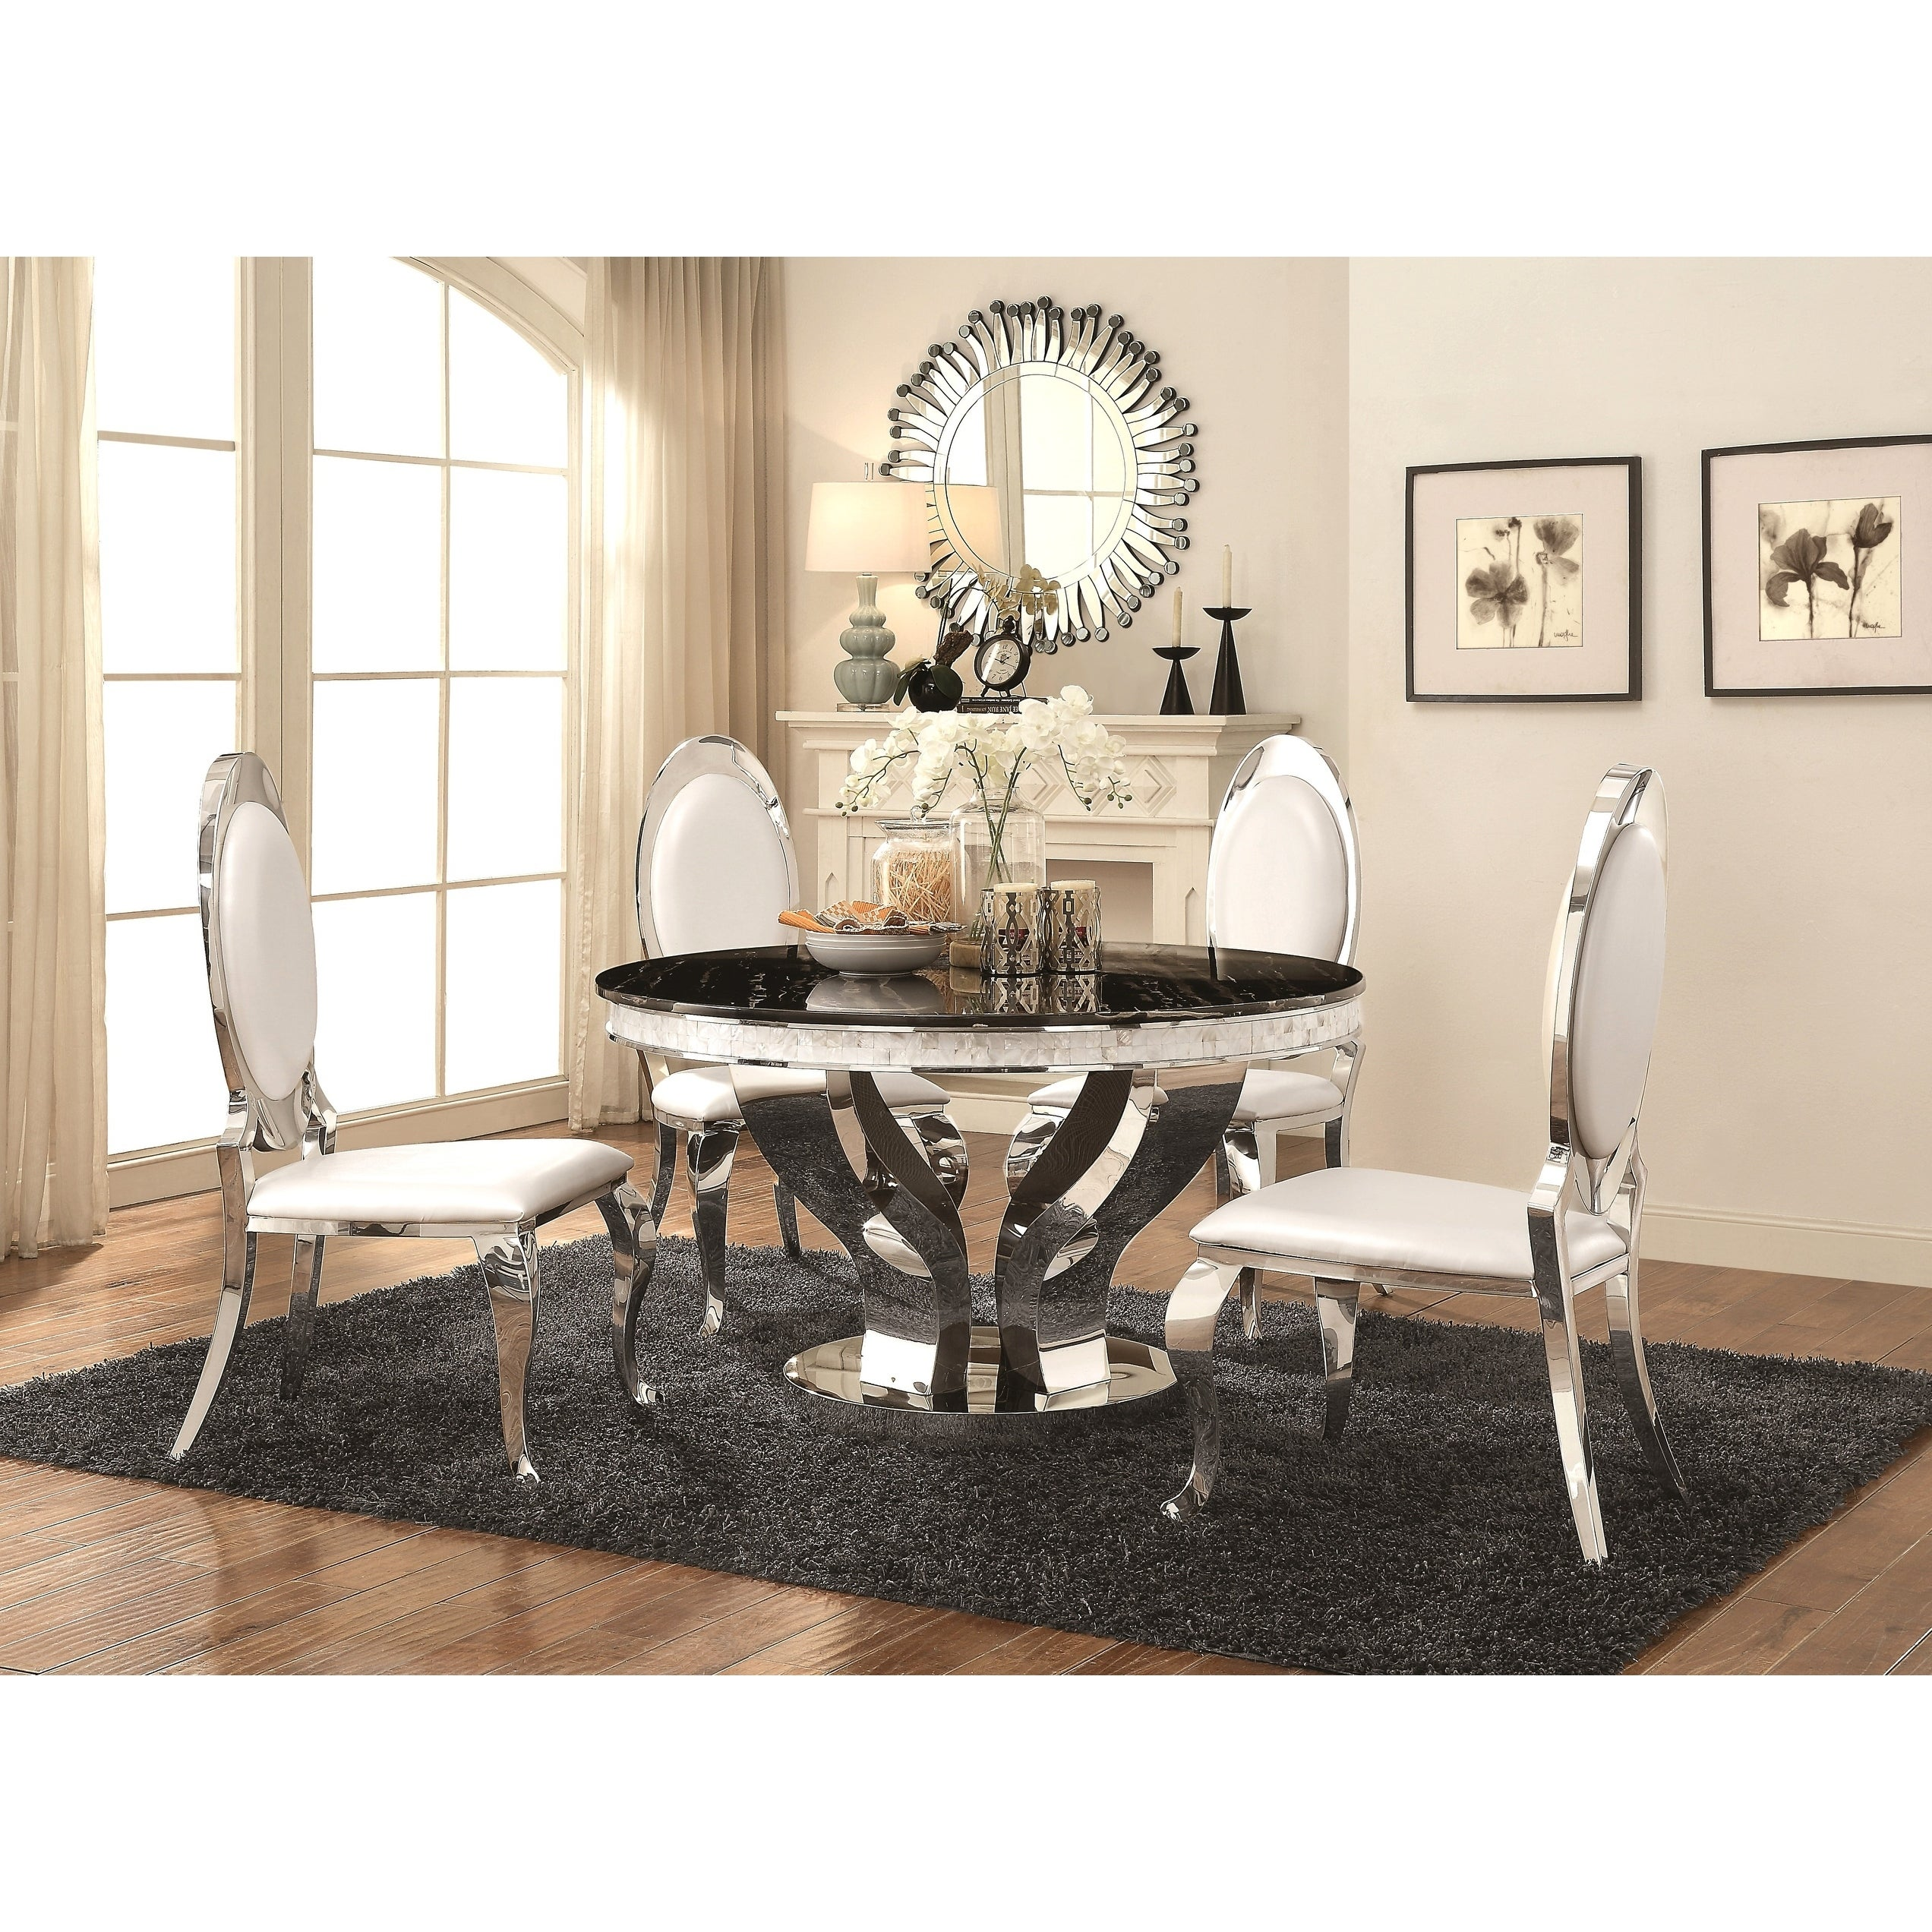 Marvelous Luxurious Modern Design Round Stainless Steel Dining Set With Marble Table Top Home Remodeling Inspirations Genioncuboardxyz